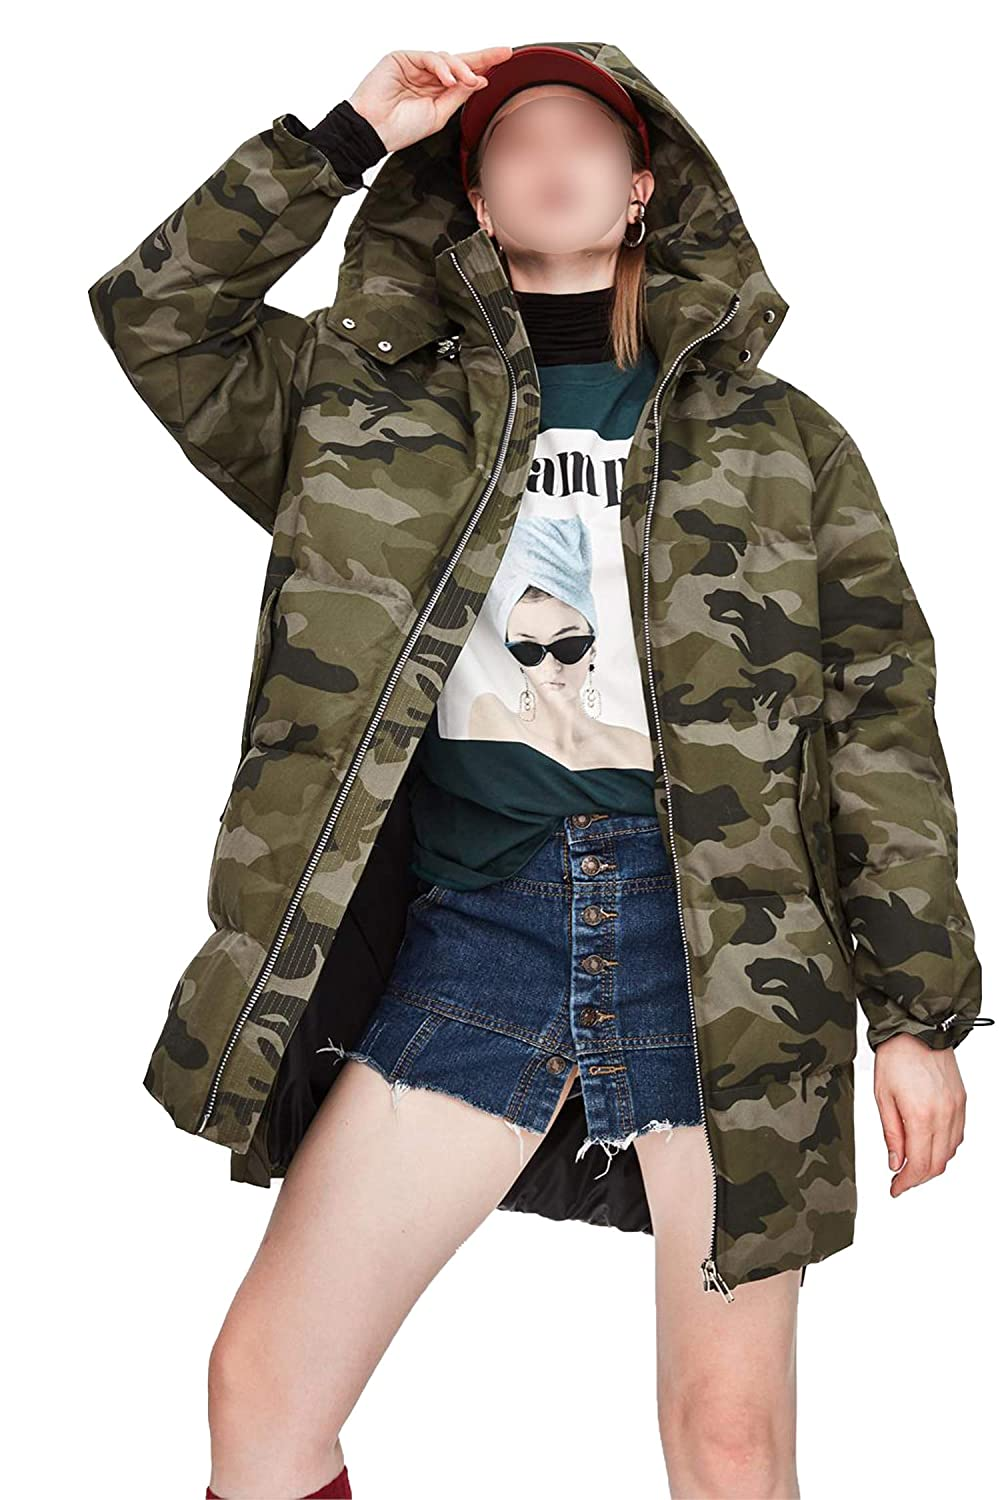 Camouflage long Lucky Shop Winter Fashion Street Woman Casual Camouflage Down Jacket Safari Coat with Hood